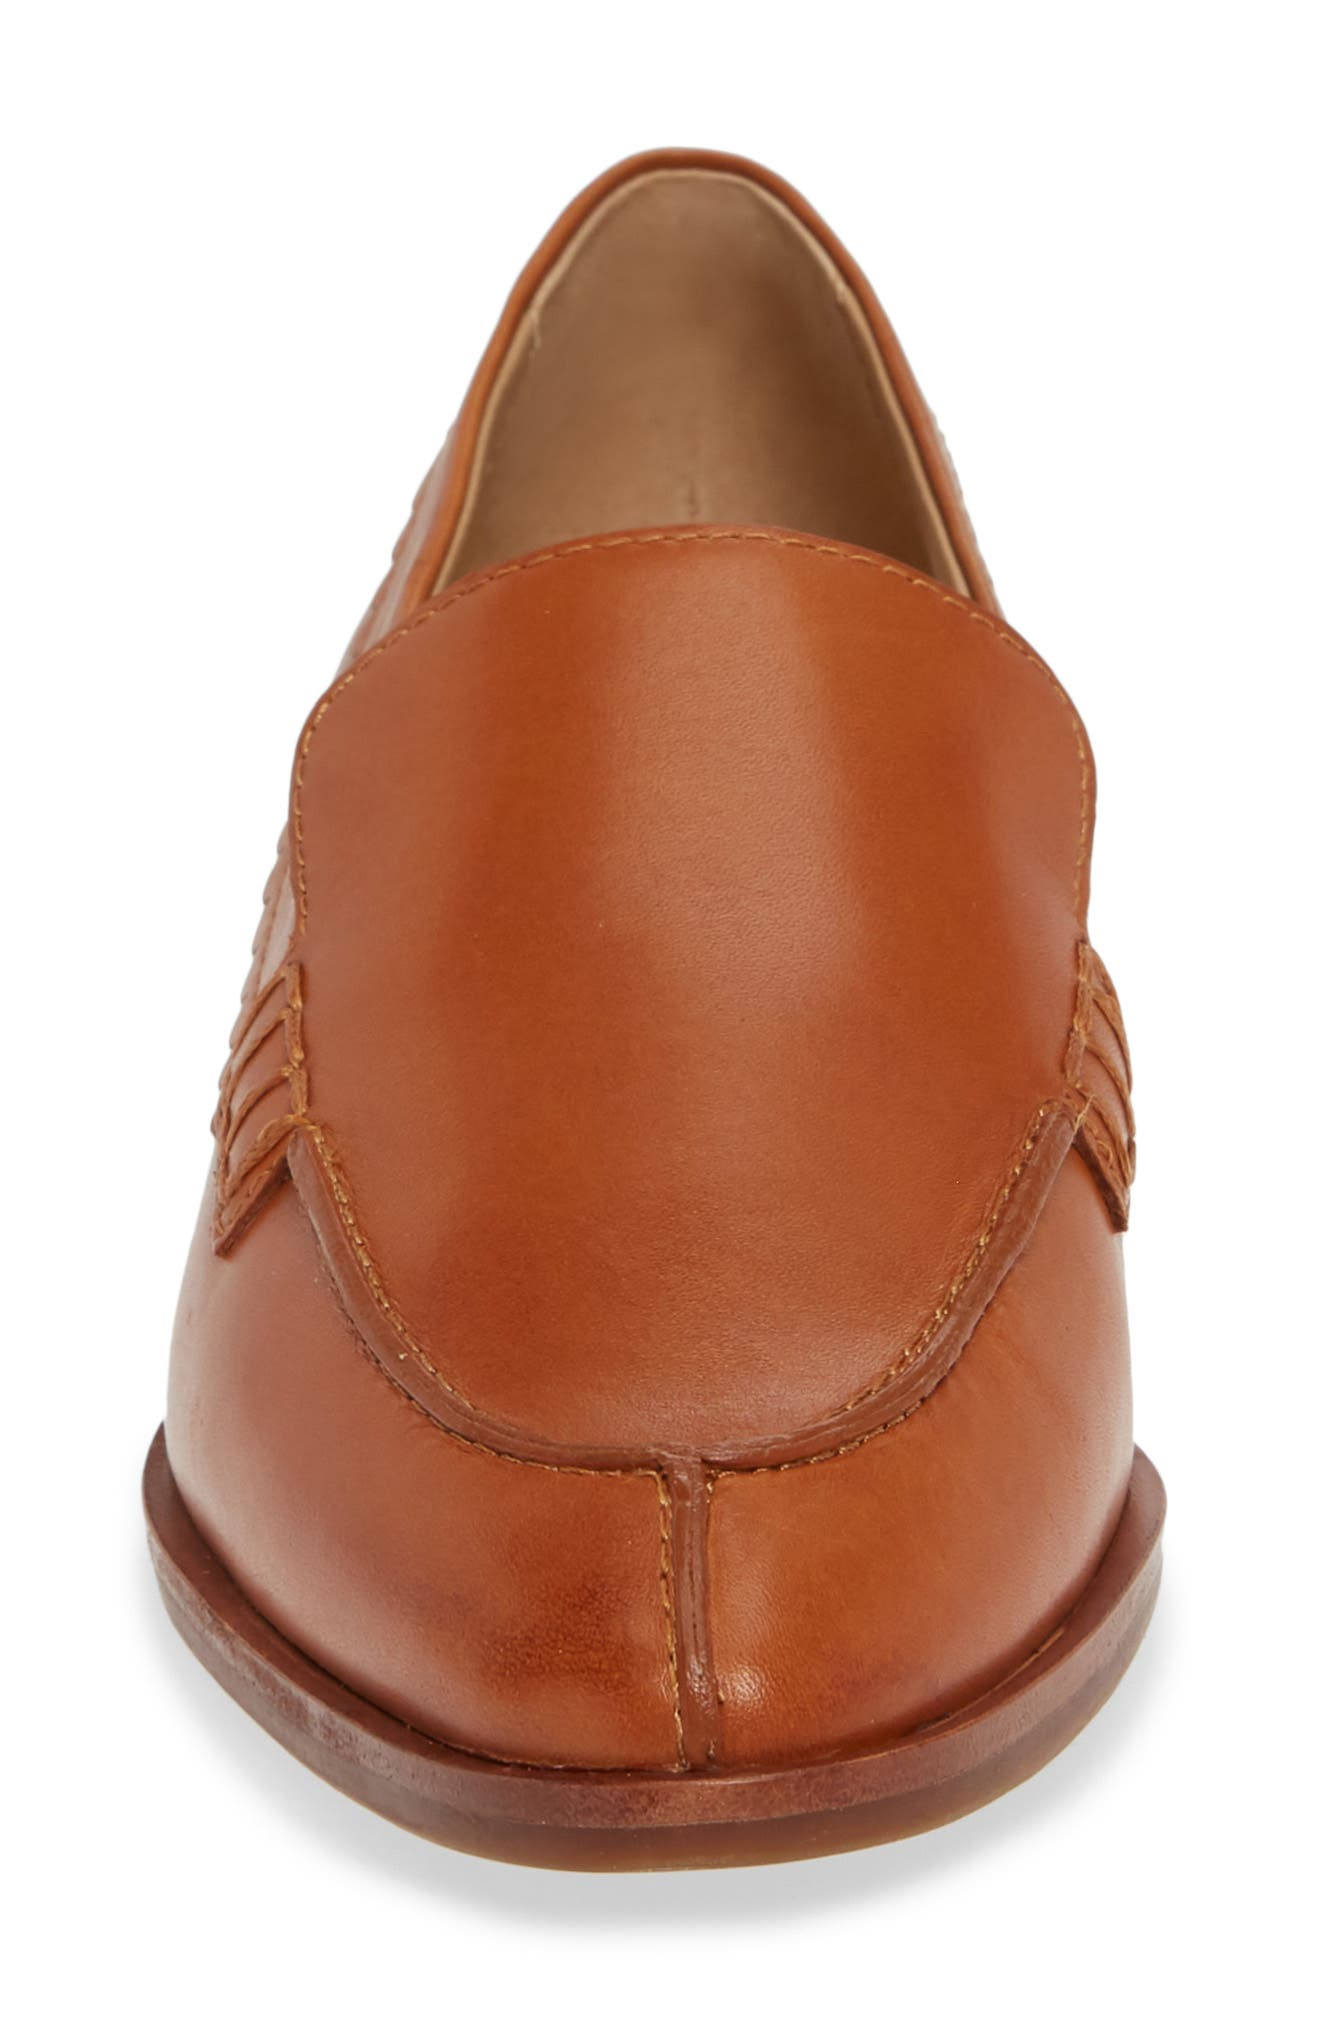 Bowery Loafer,                             Alternate thumbnail 4, color,                             COCONUT VACHETTA LEATHER